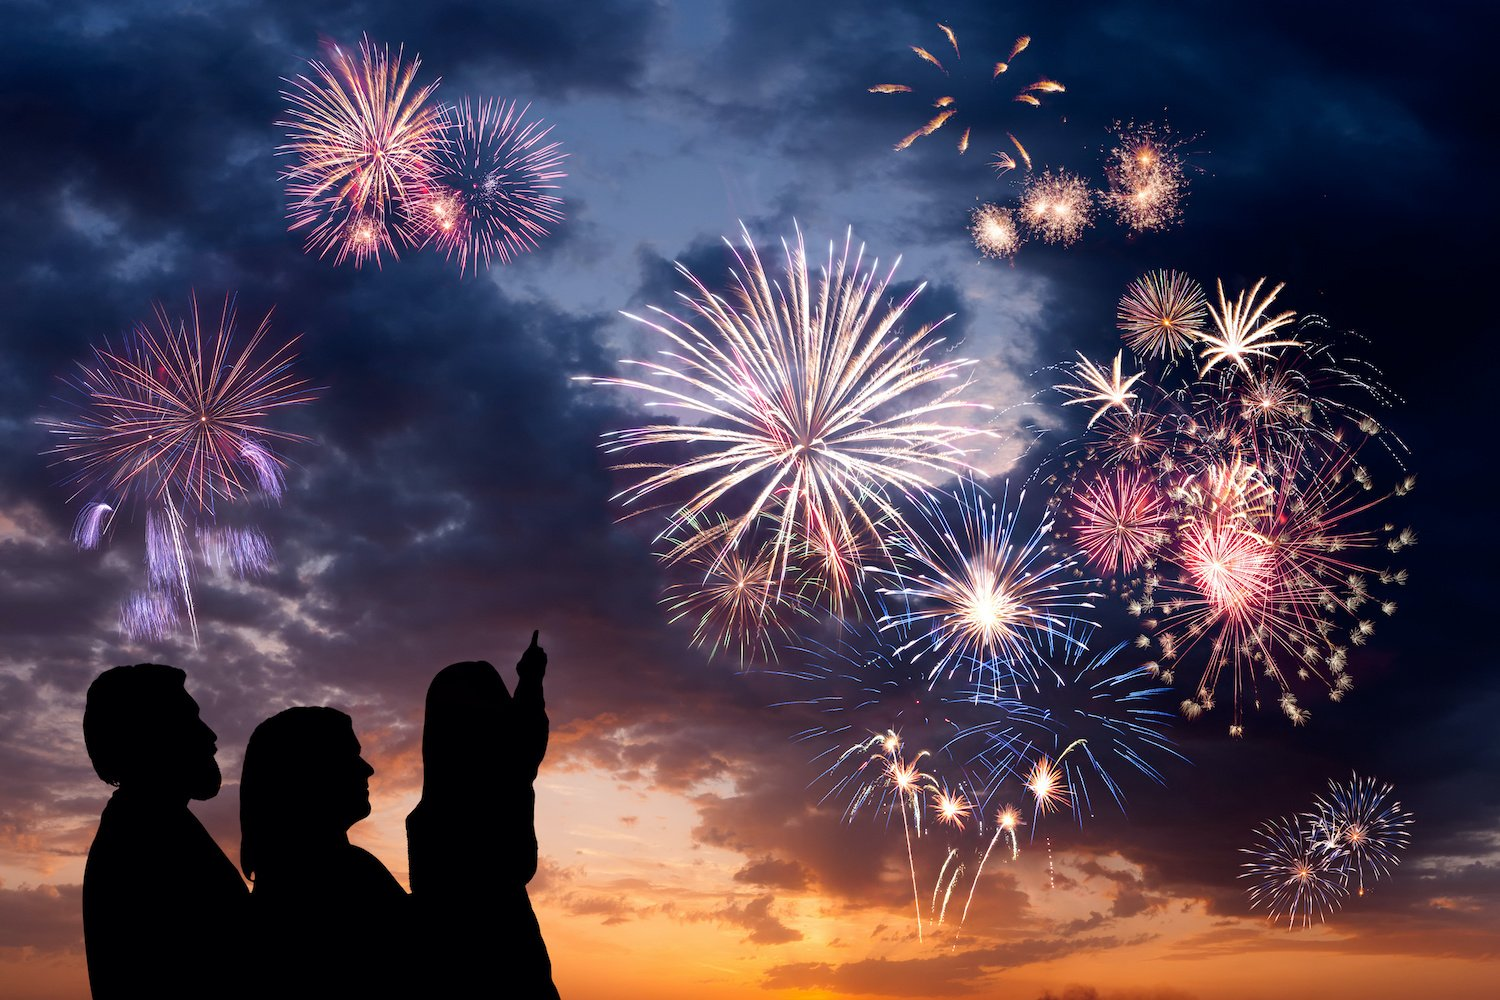 4 Tips to Protect Your Hearing Health During Fourth of July Fireworks